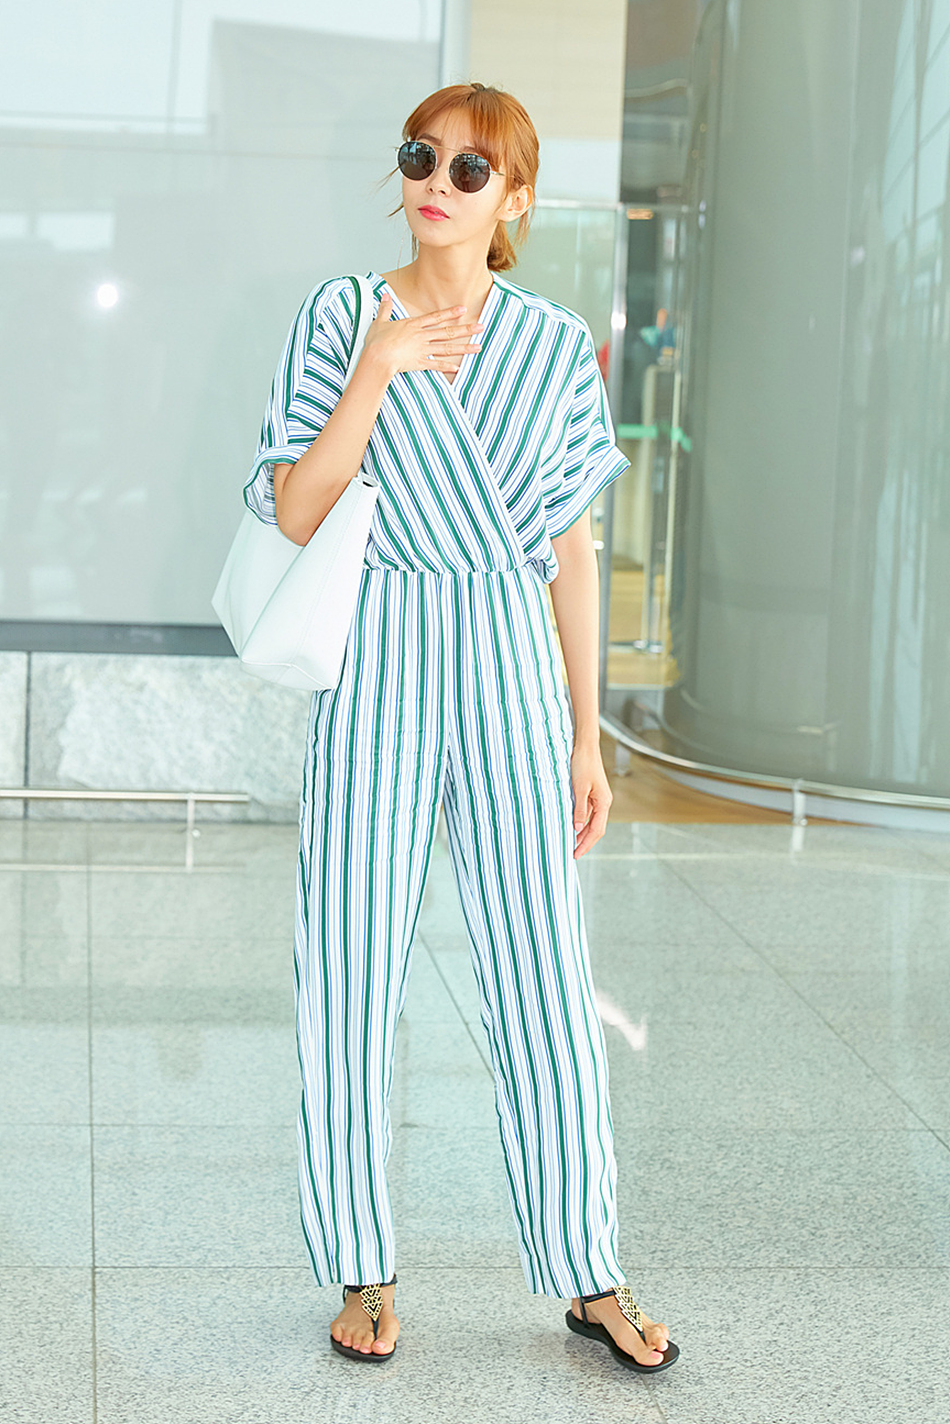 Uee Dresses Up Like It's Vacation Season! Jumpsuits and Flip-flops